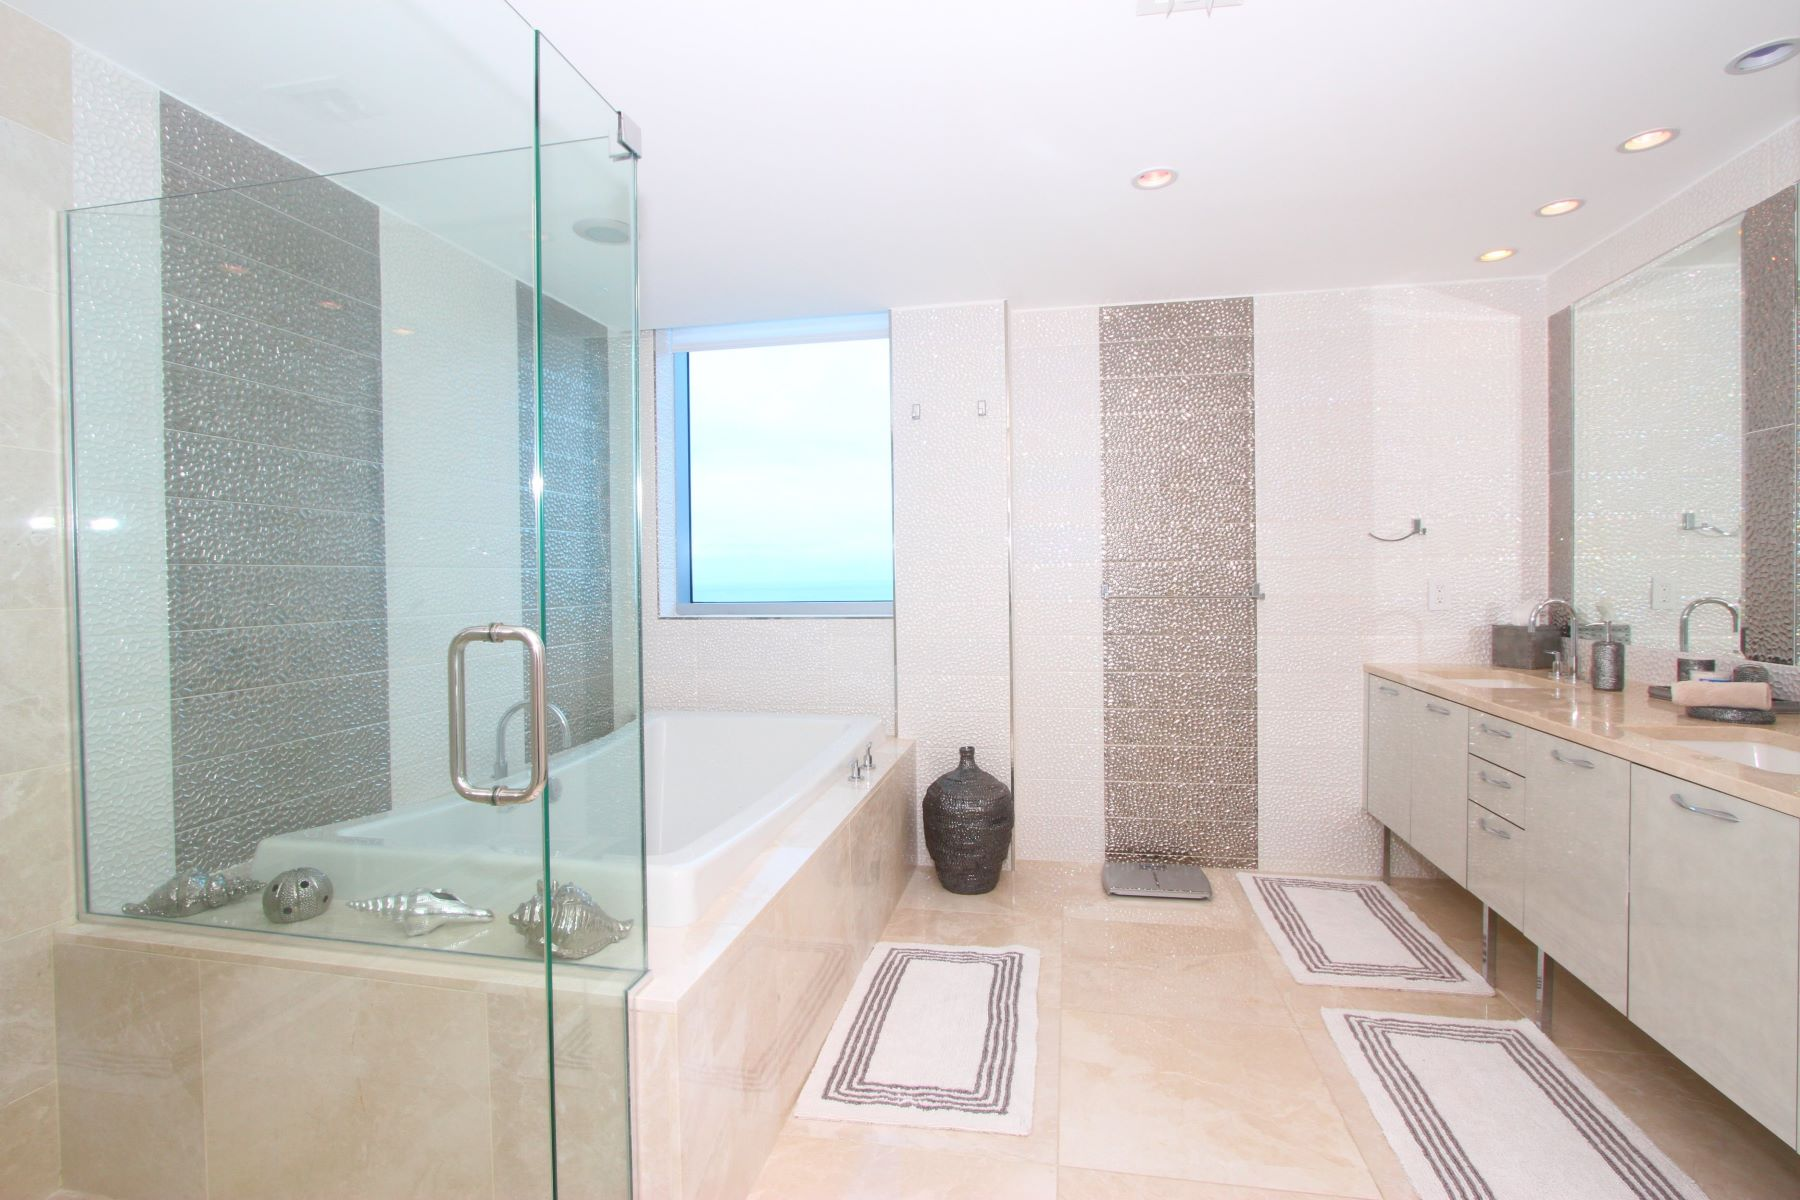 Additional photo for property listing at Sunny Isles Beach Residential Rental  阳光岛海岸, 佛罗里达州 33160 美国